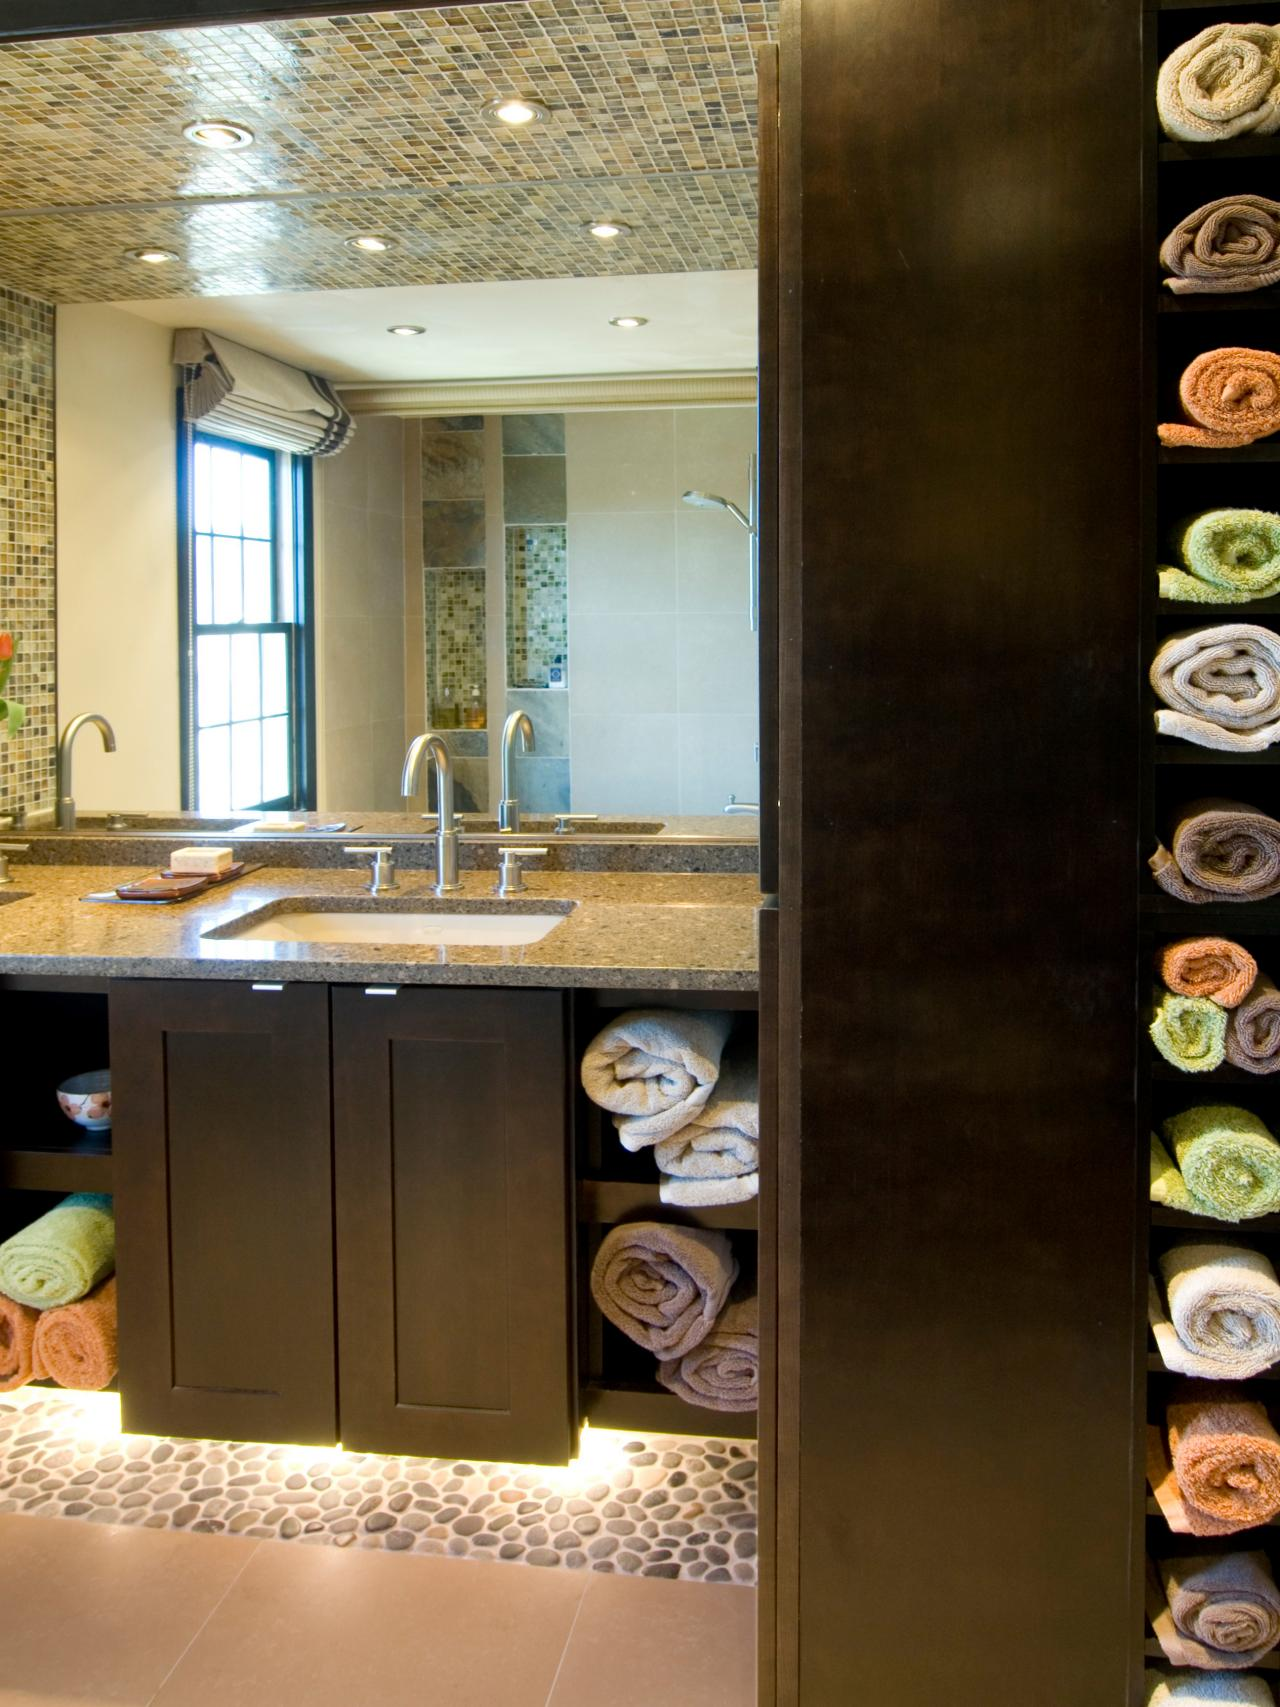 Displaying bathroom towels ideas - 7 Creative Storage Solutions For Bathroom Towels And Toilet Paper Hgtv